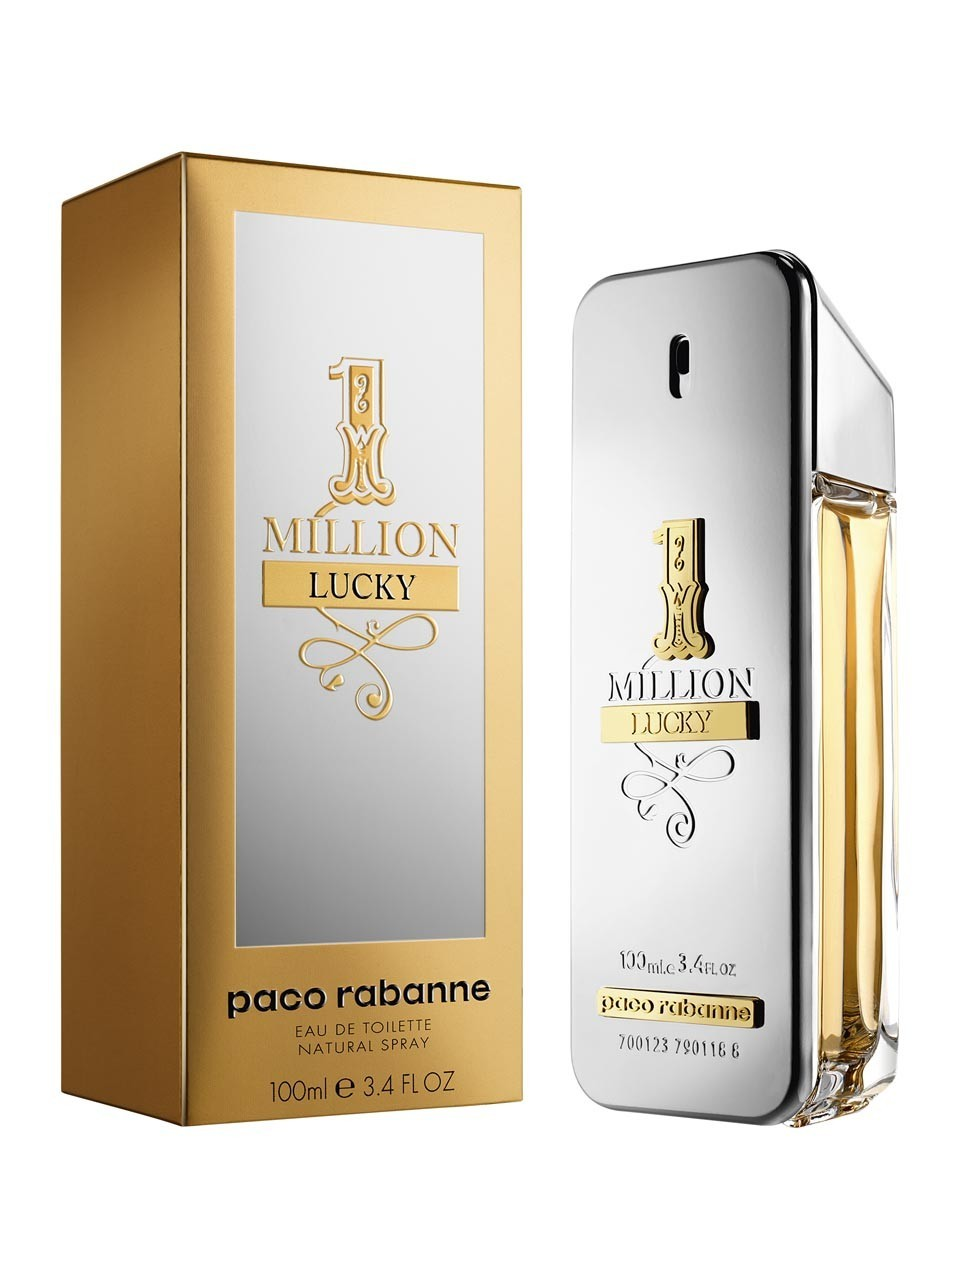 cd0e93a9b8 Perfume One Million Lucky Masculino Eau de Toilette 100ml - Paco ...